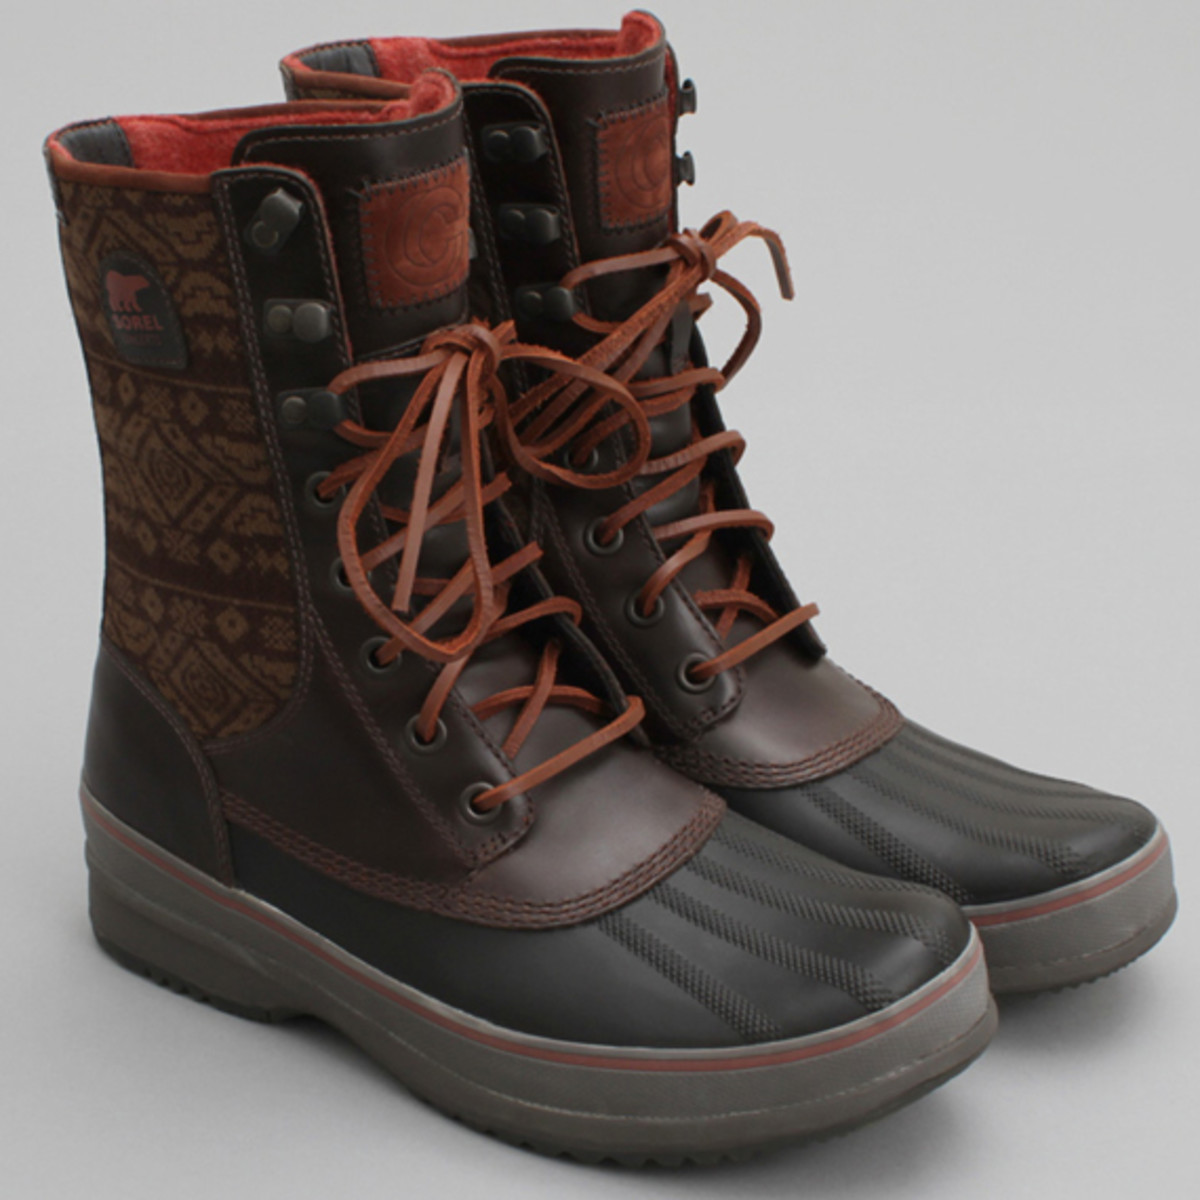 concepts-sorel-boots-pack-black-friday-14